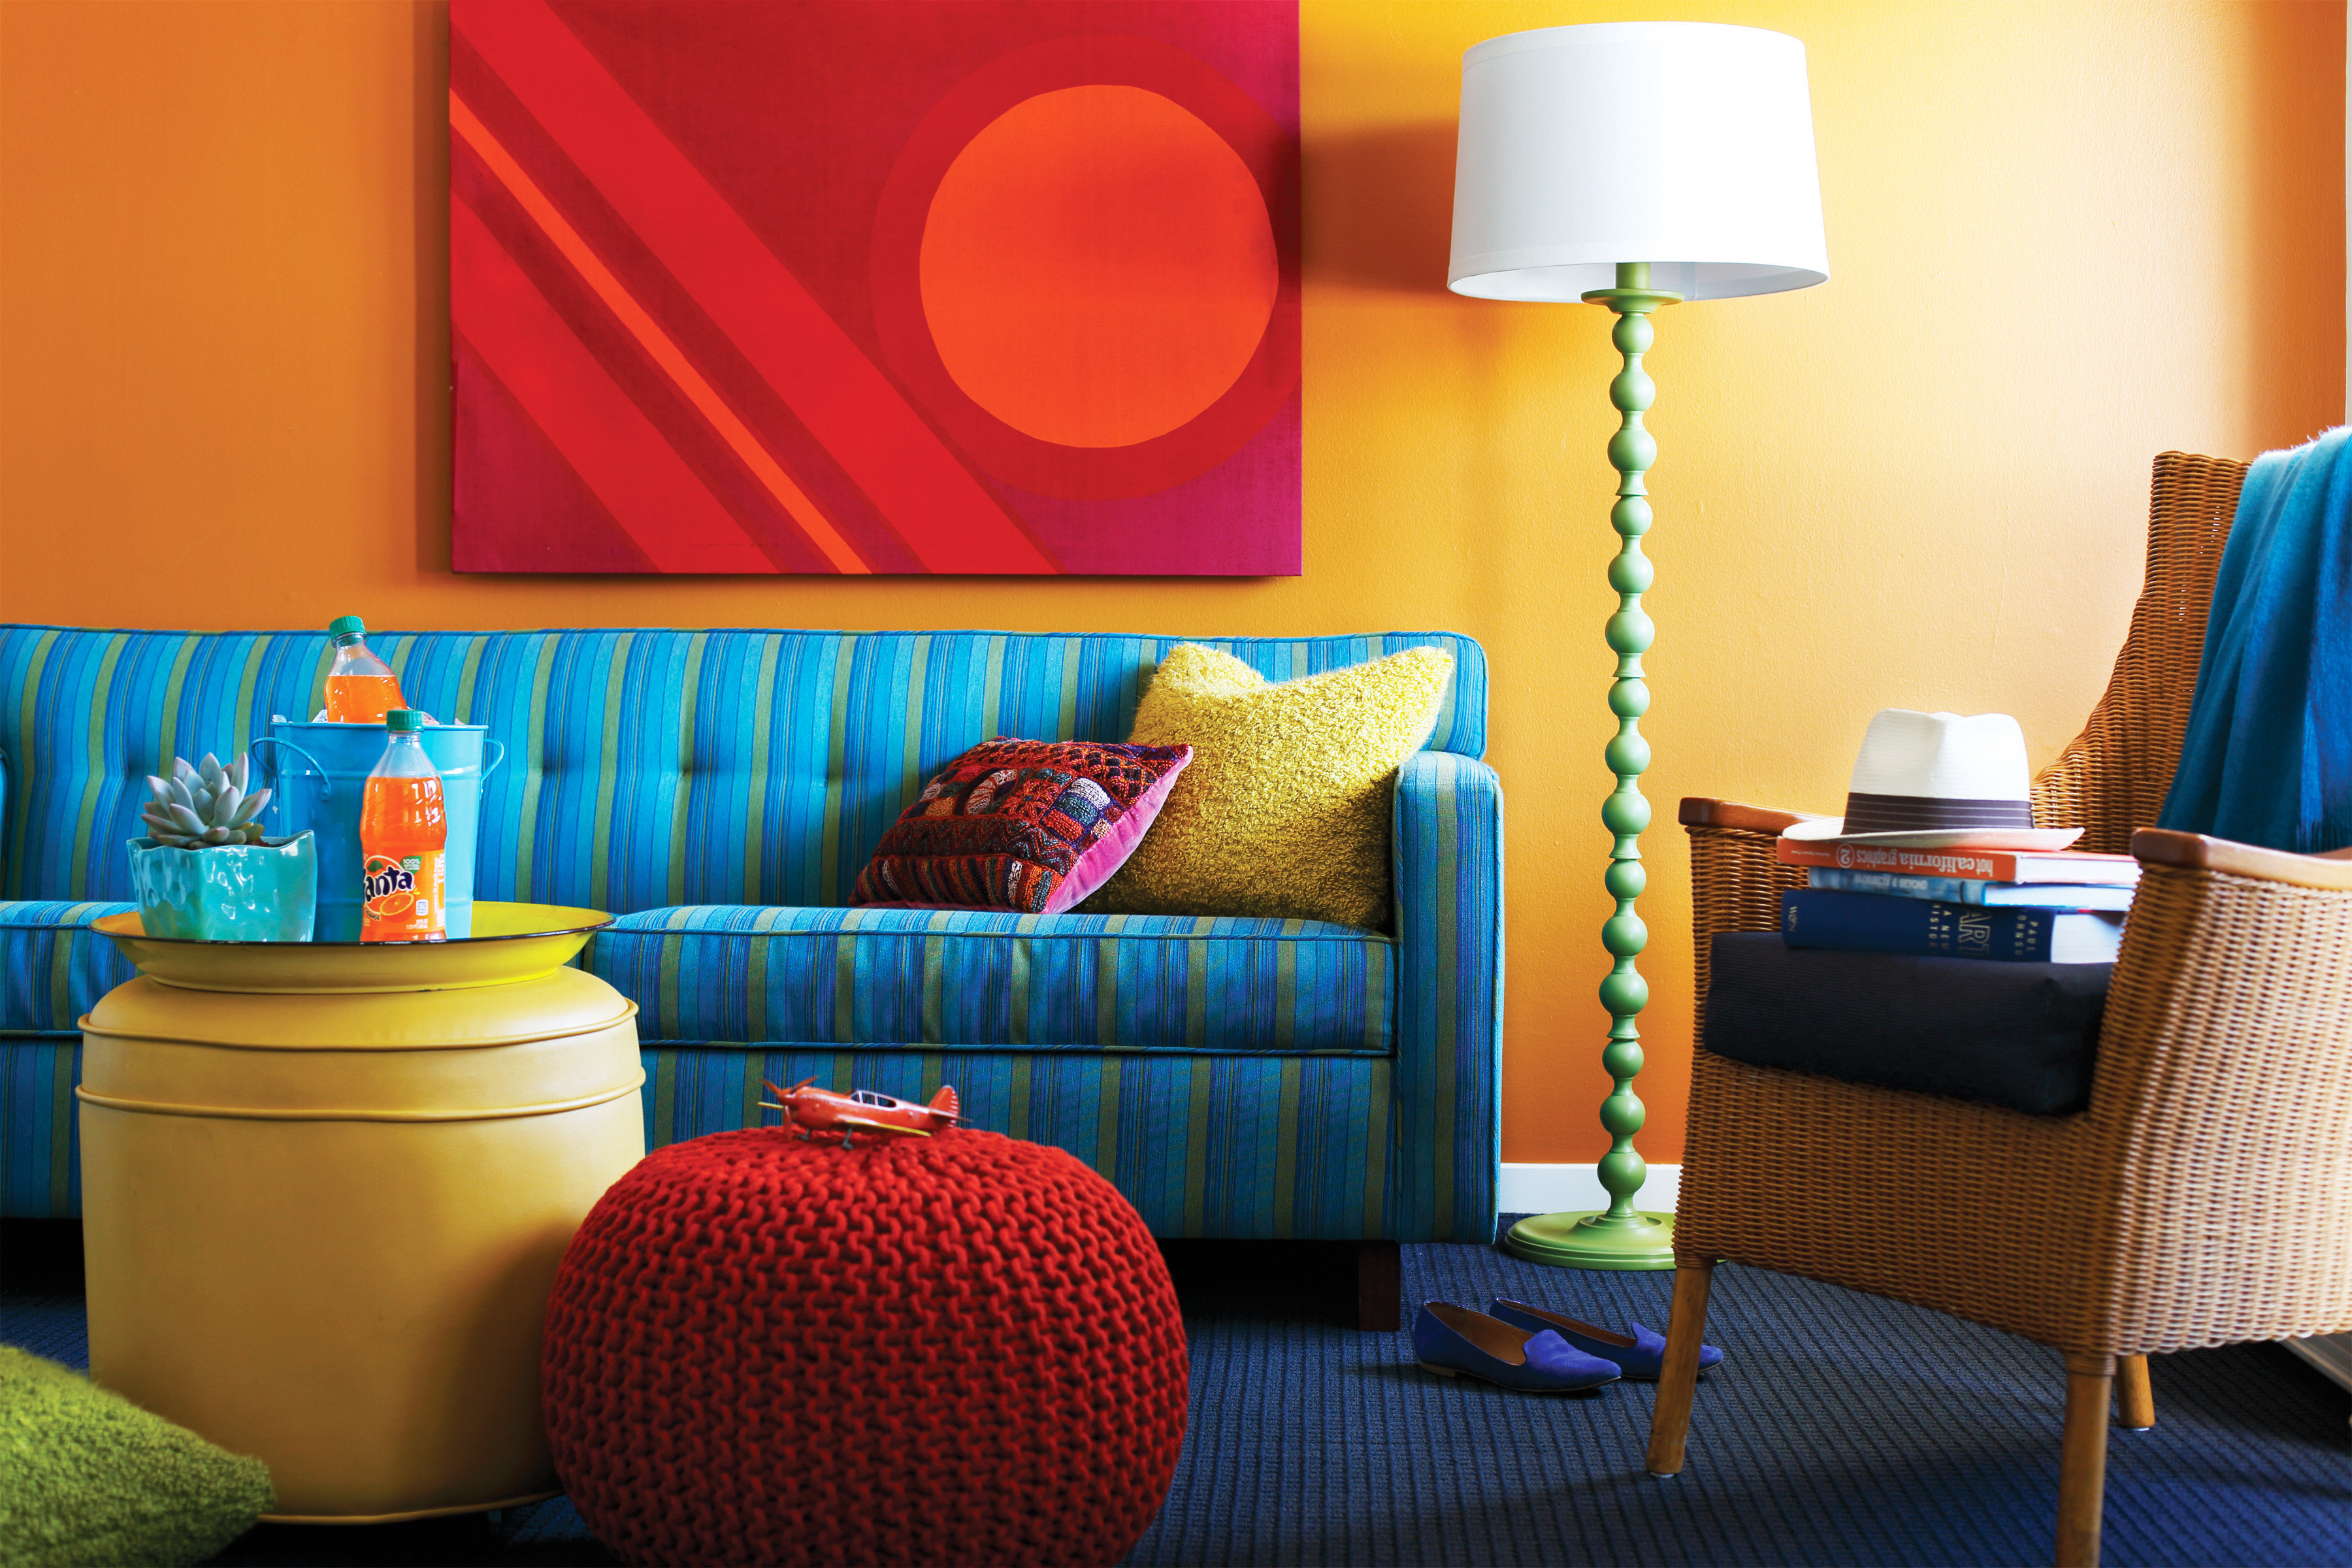 Hip Modern color blue living room yellow red home Suite bed sheet orange colorful Bedroom colored